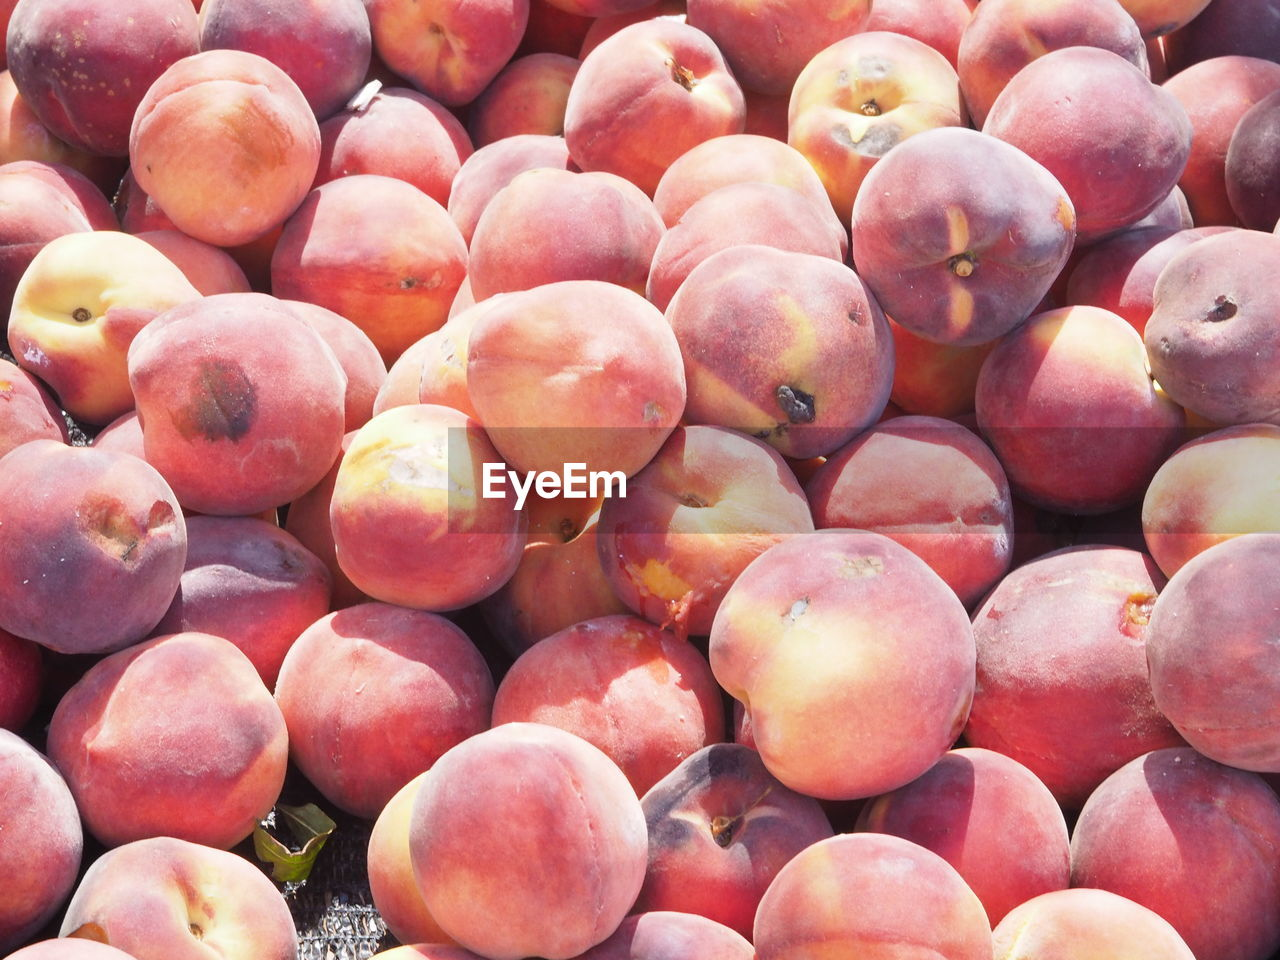 Close-up of peach for sale